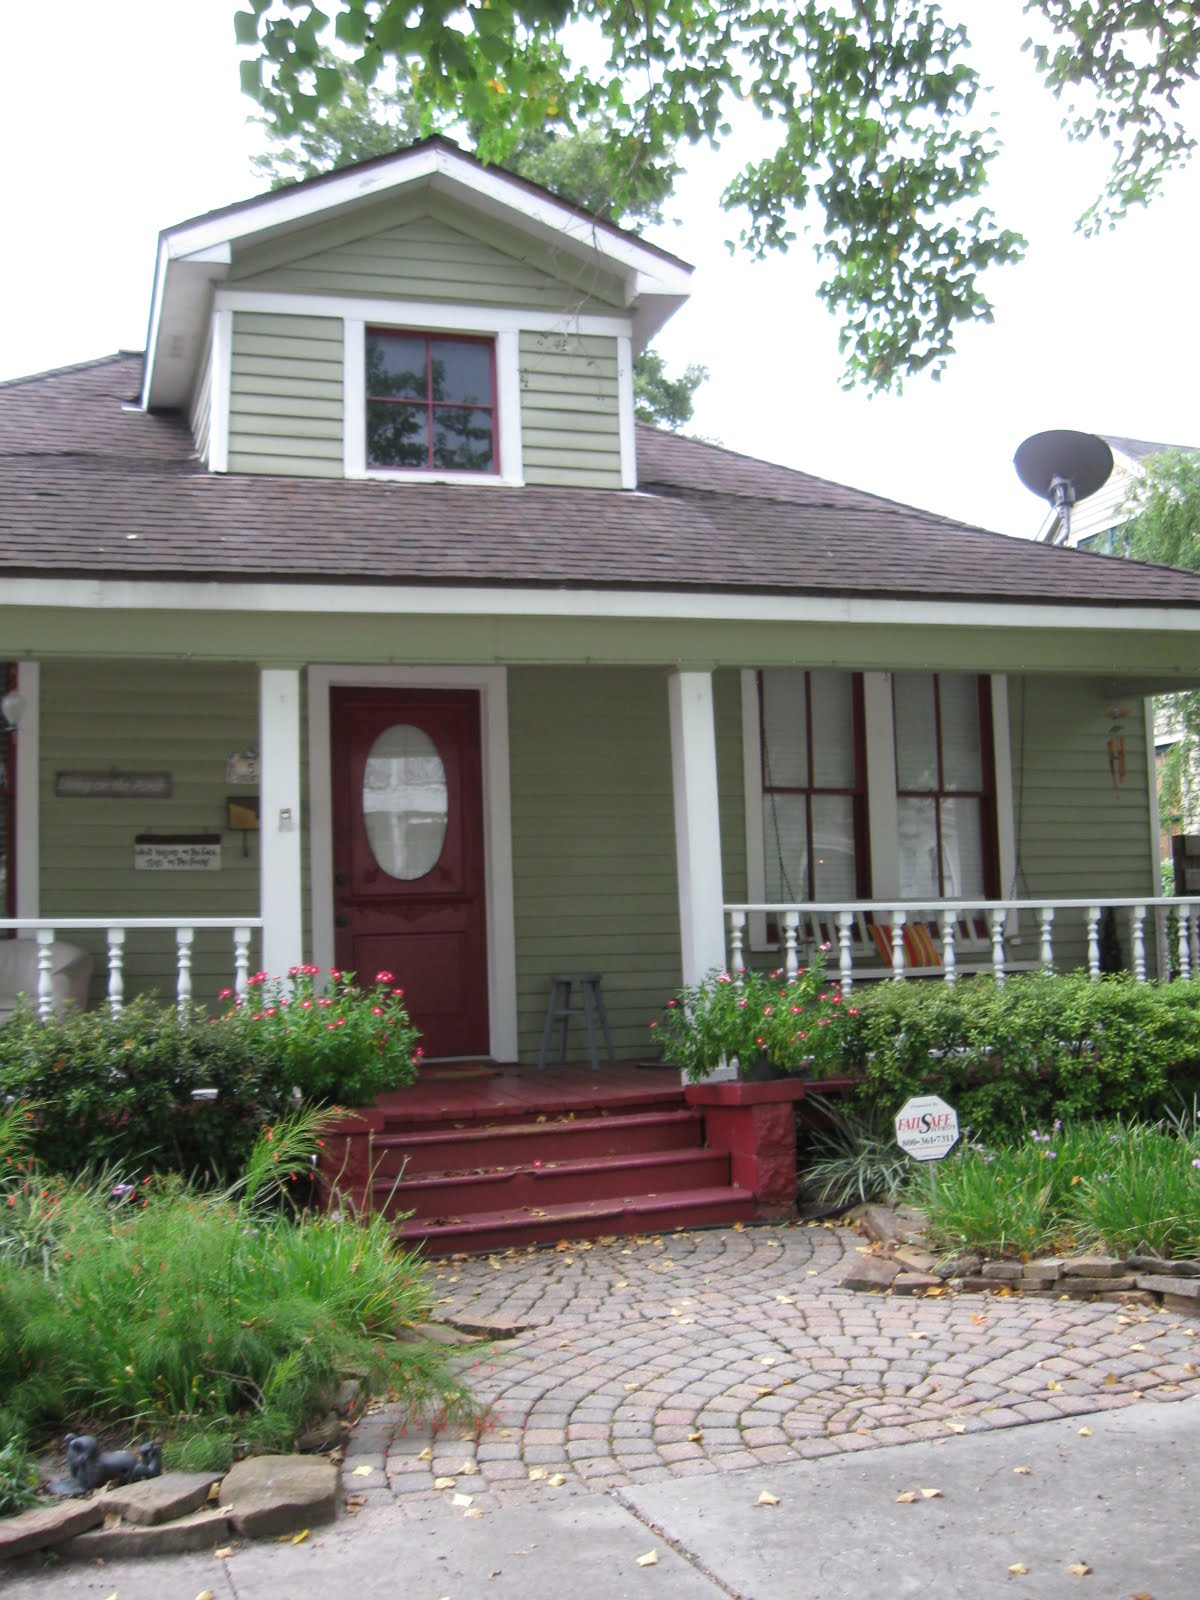 The other houston 1930 front porch bungalow Front porch ideas